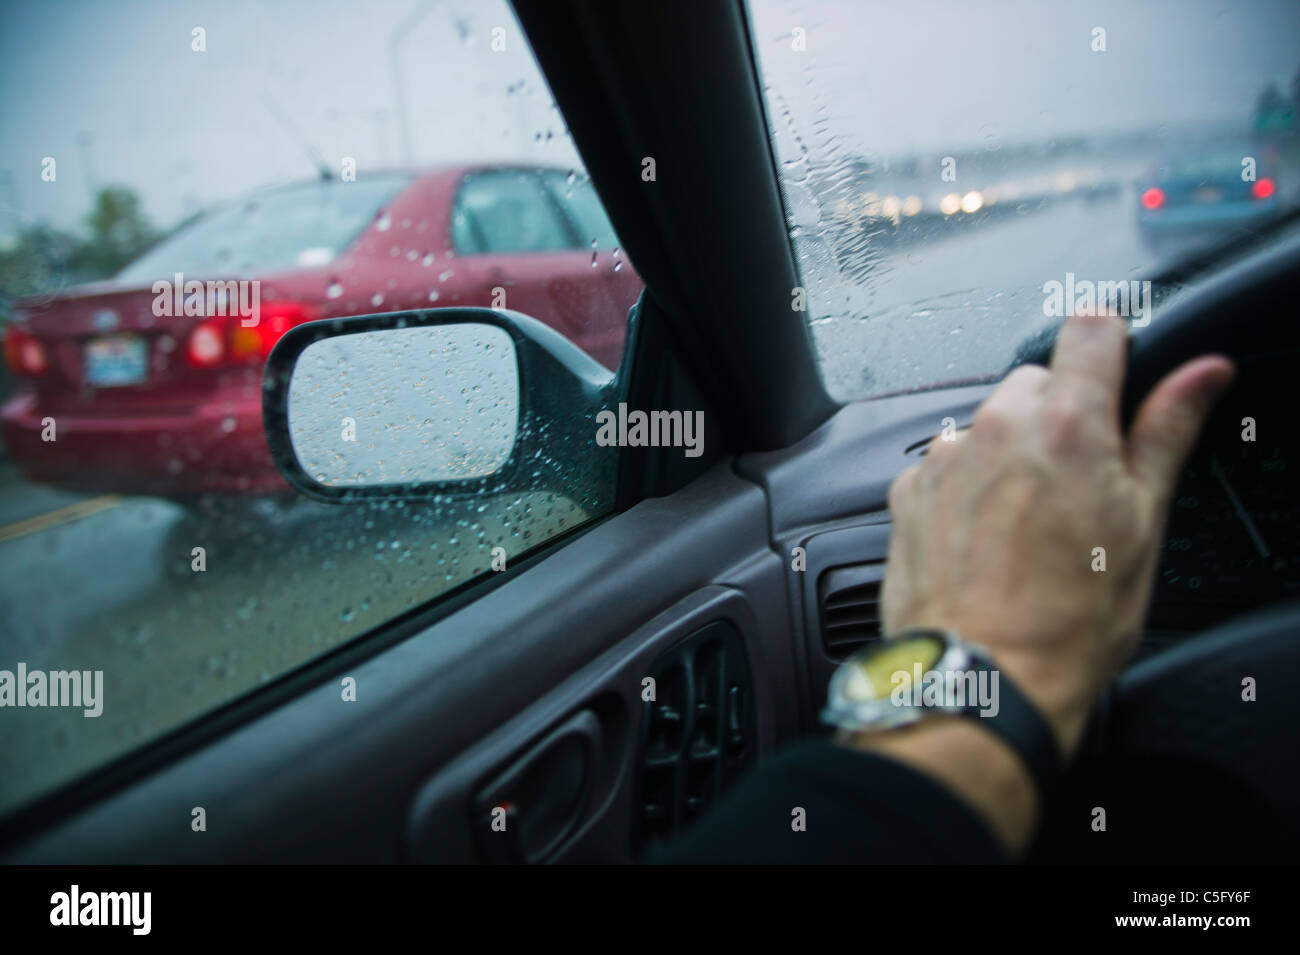 A first person point of view of driving on a freeway in the rain. - Stock Image